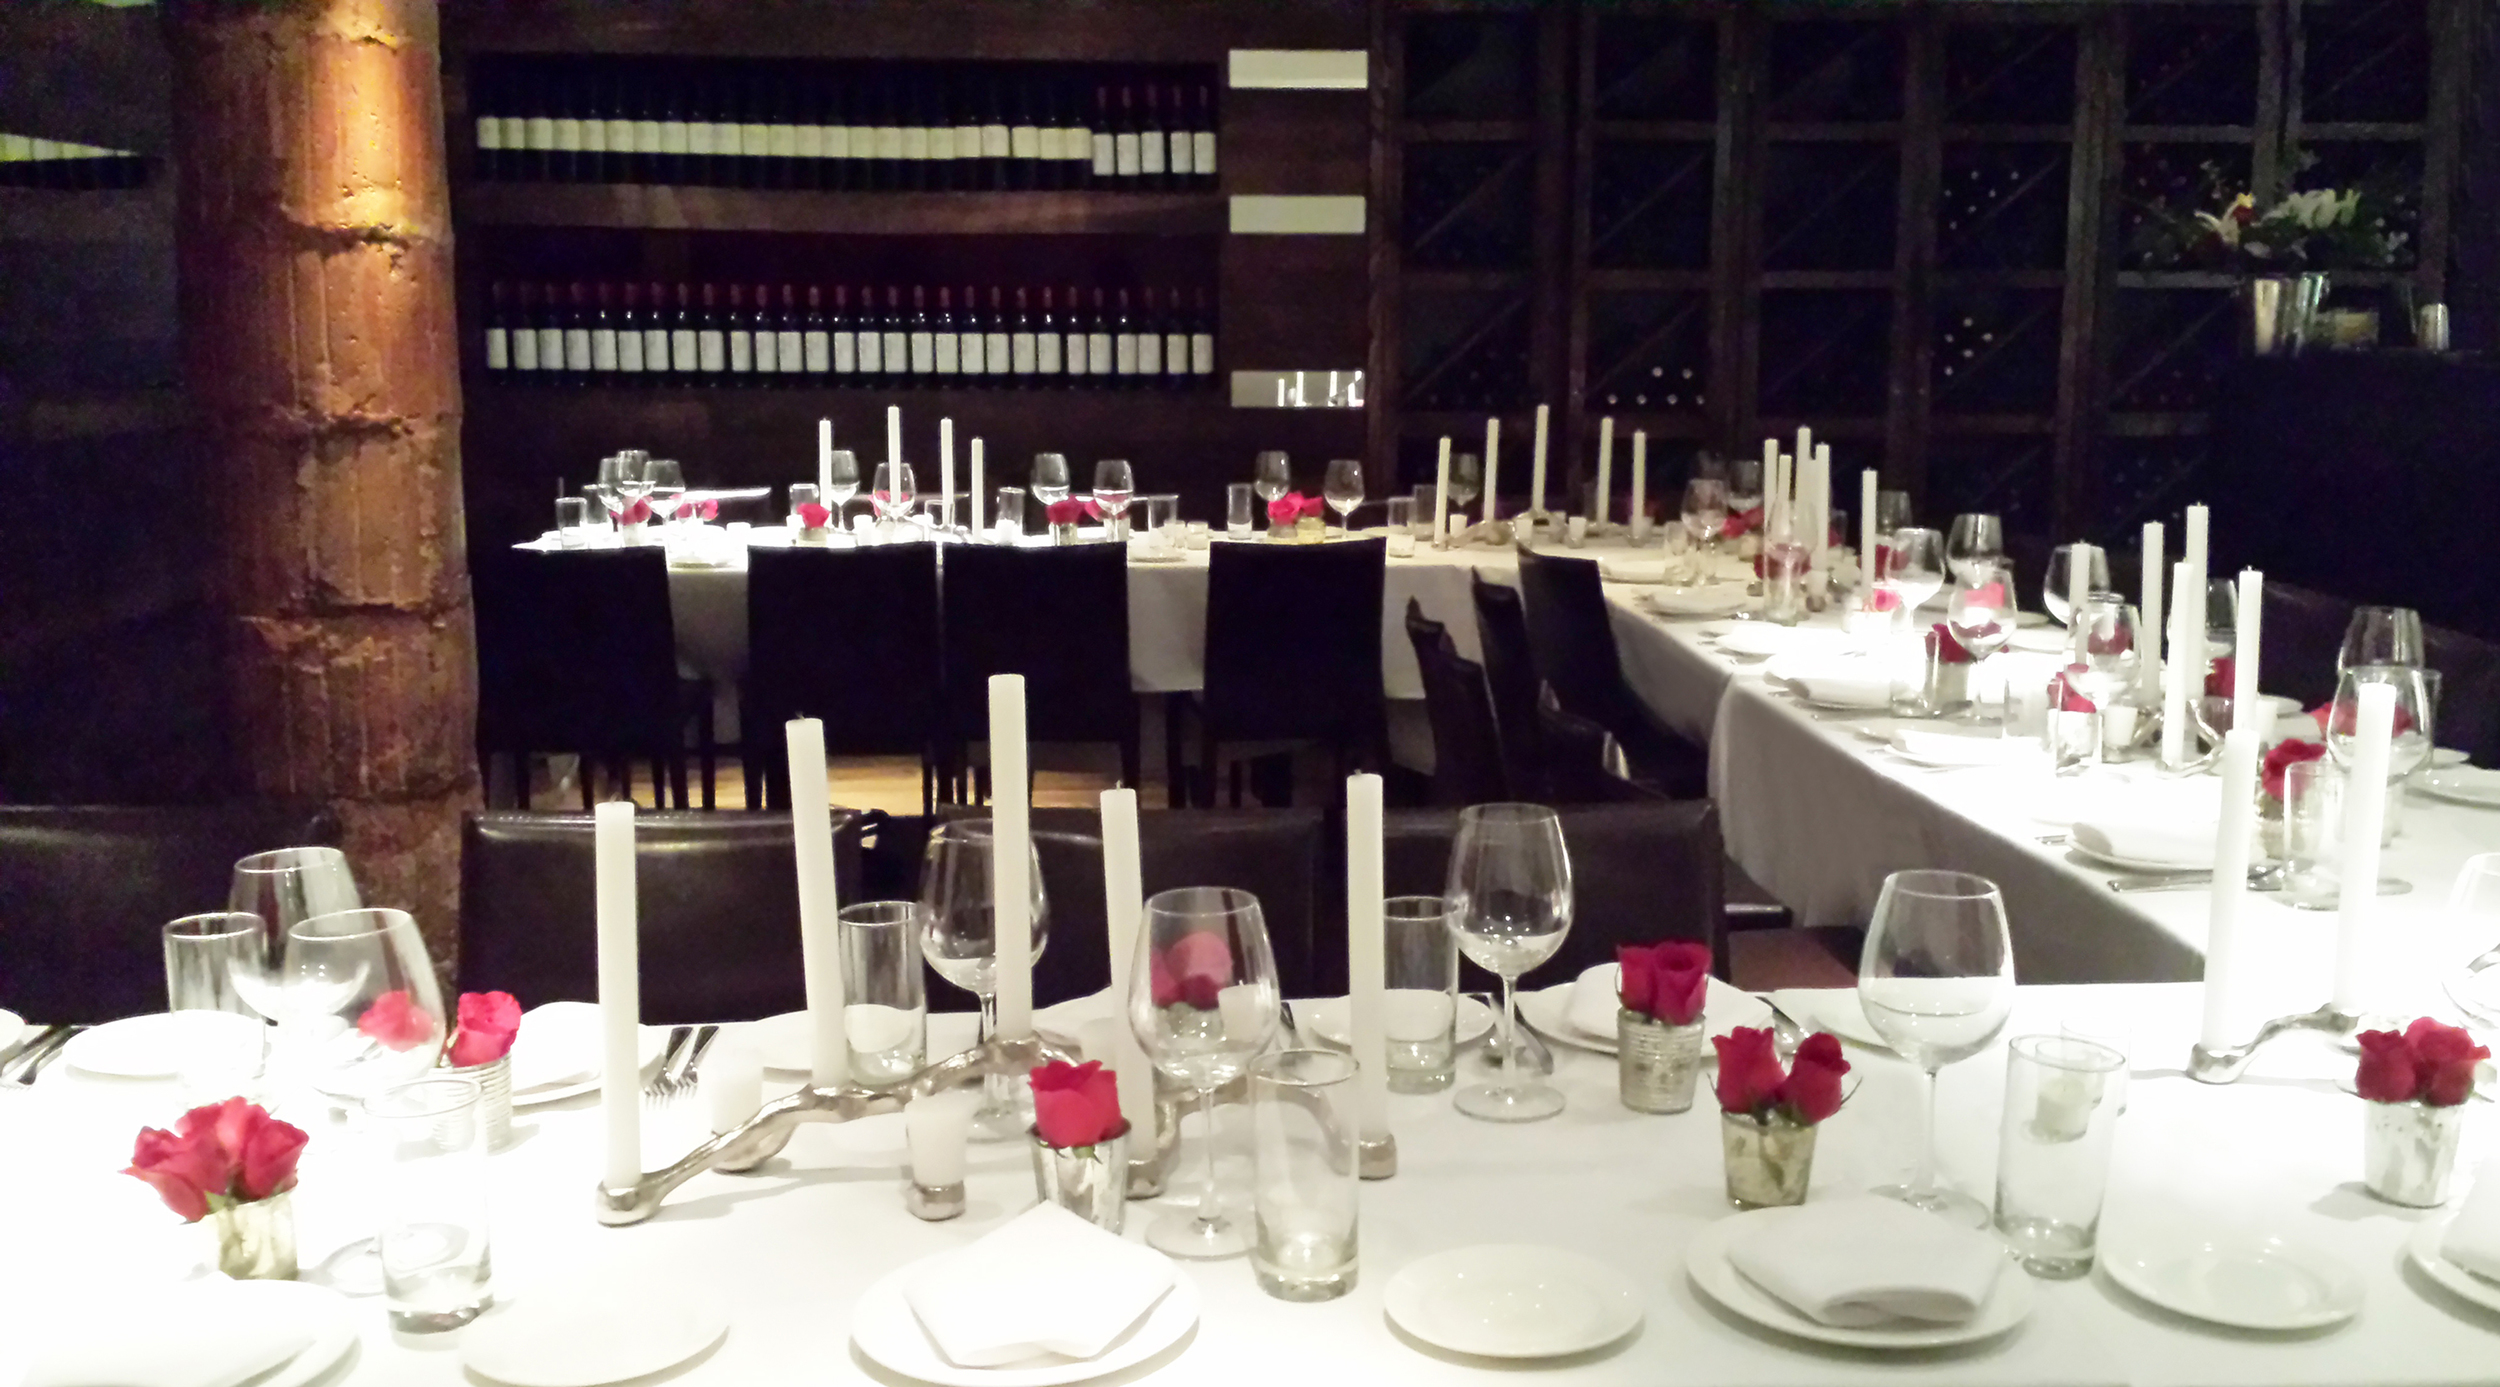 wolfgang puck at hotel bel air private dining room new york